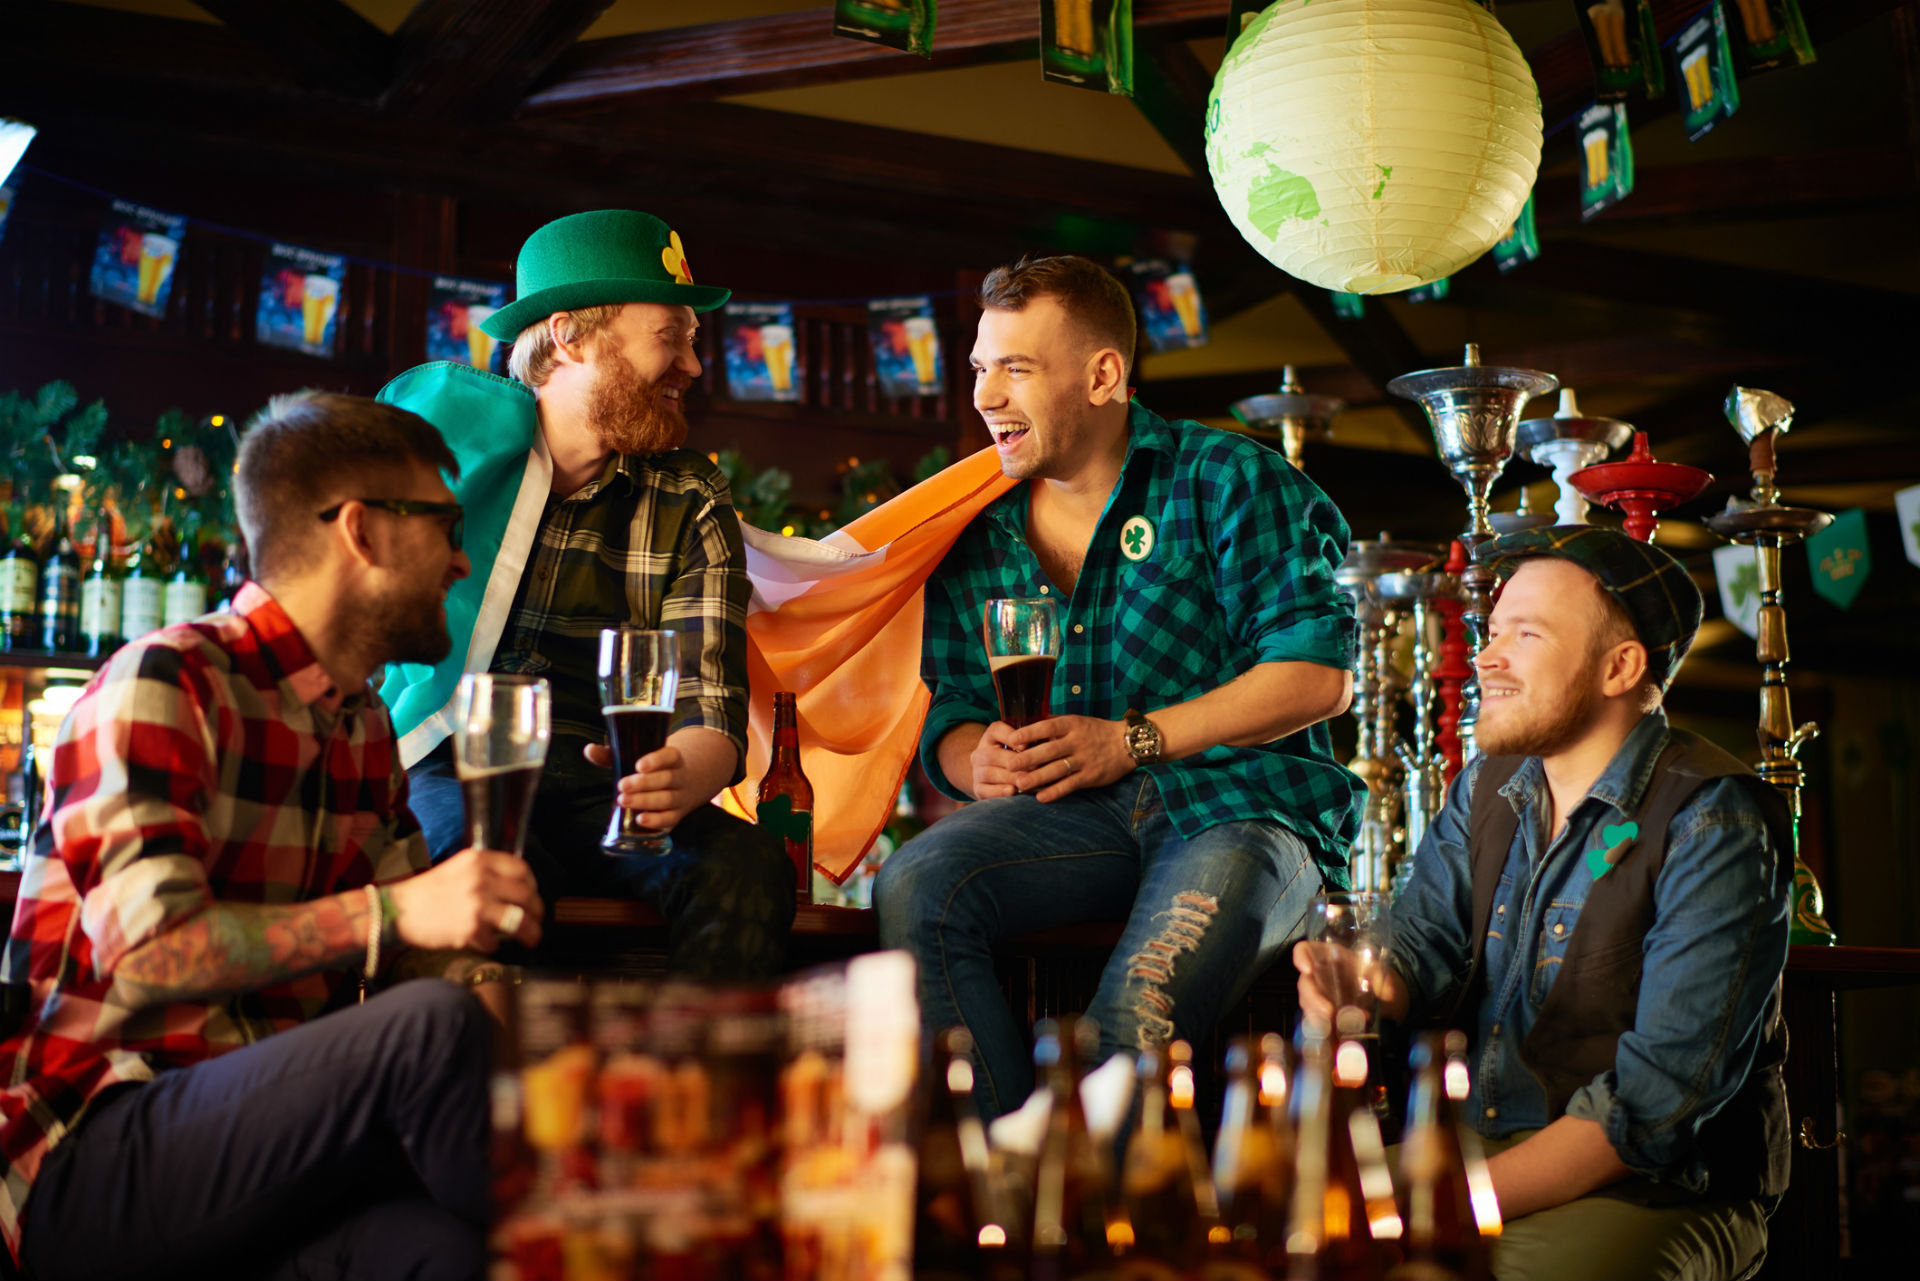 How to Get Your Business Ready for St Patrick's Day